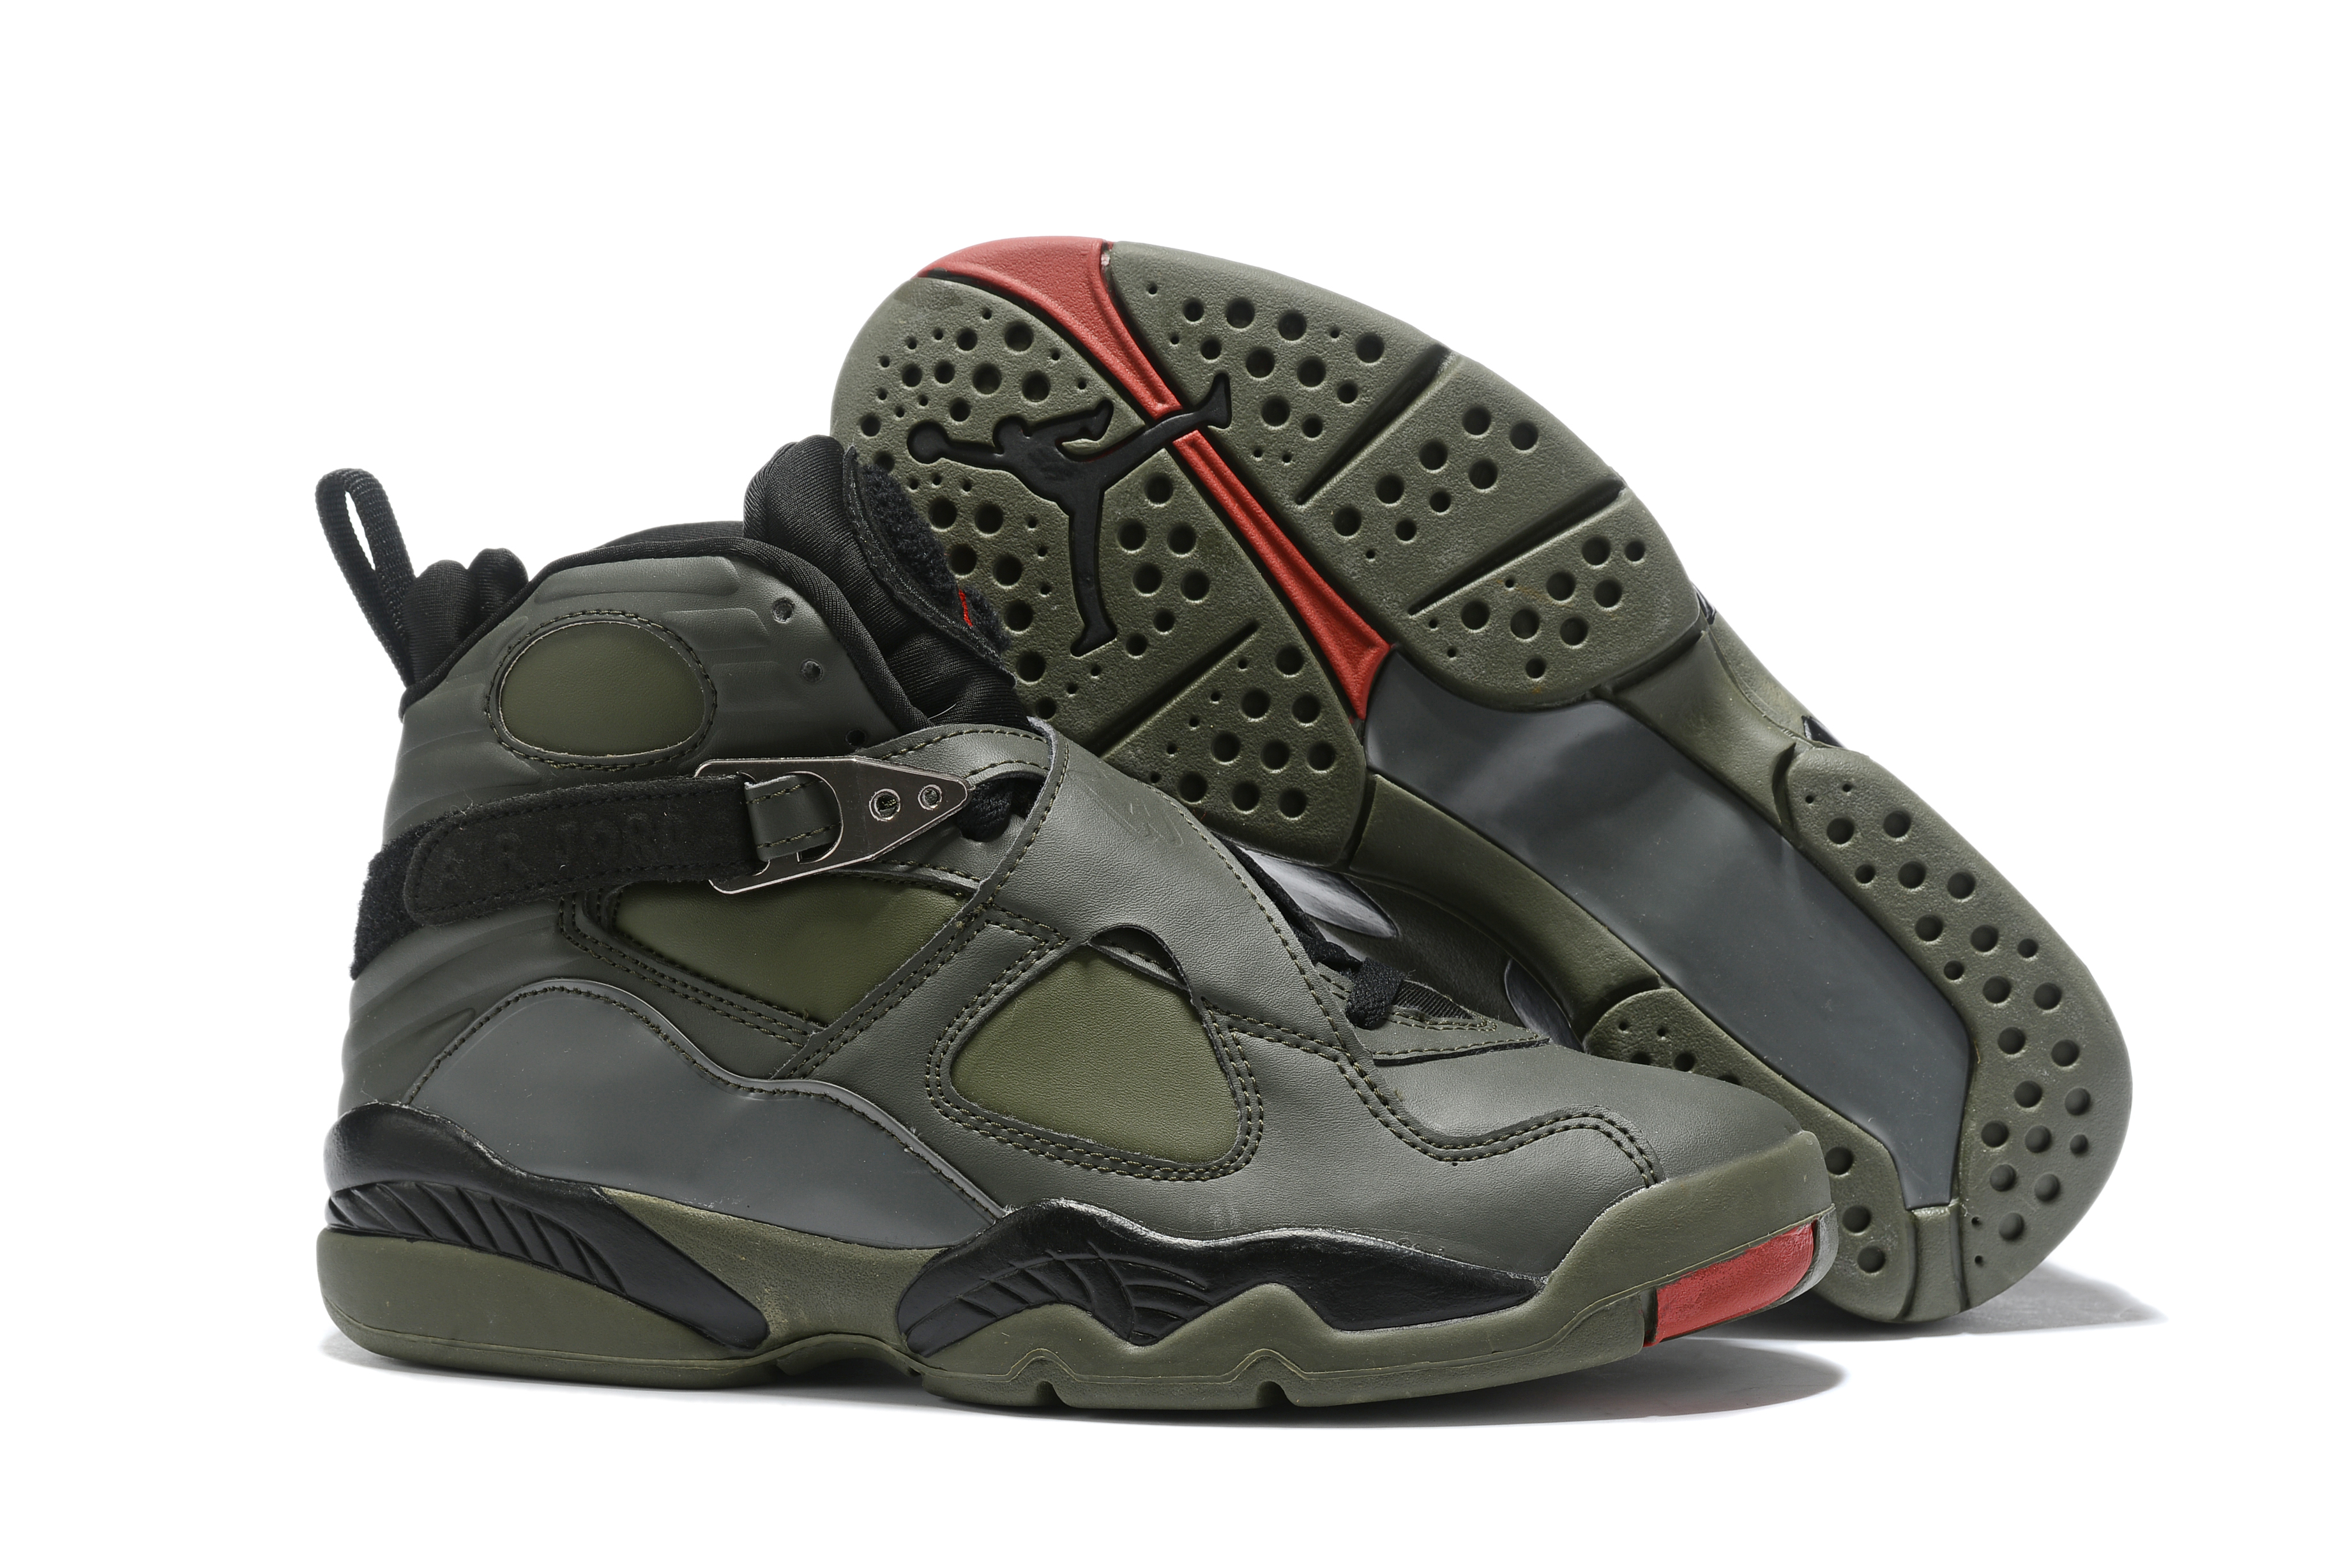 2019 Air Jordan 8 Army Green Carbon Grey Black Red Shoes